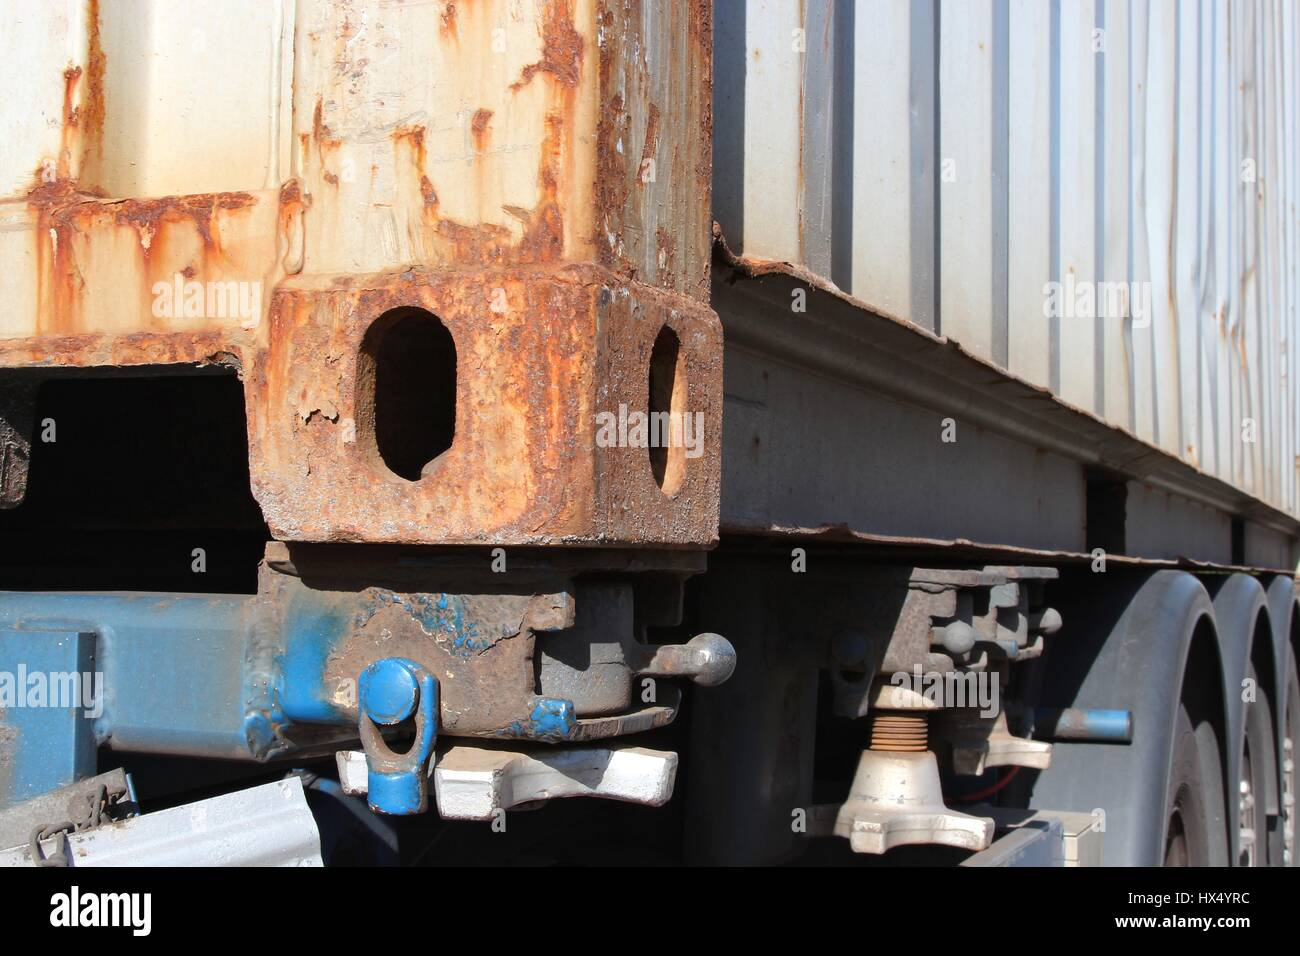 intermodal container on trailer Stock Photo: 136563264 - Alamy